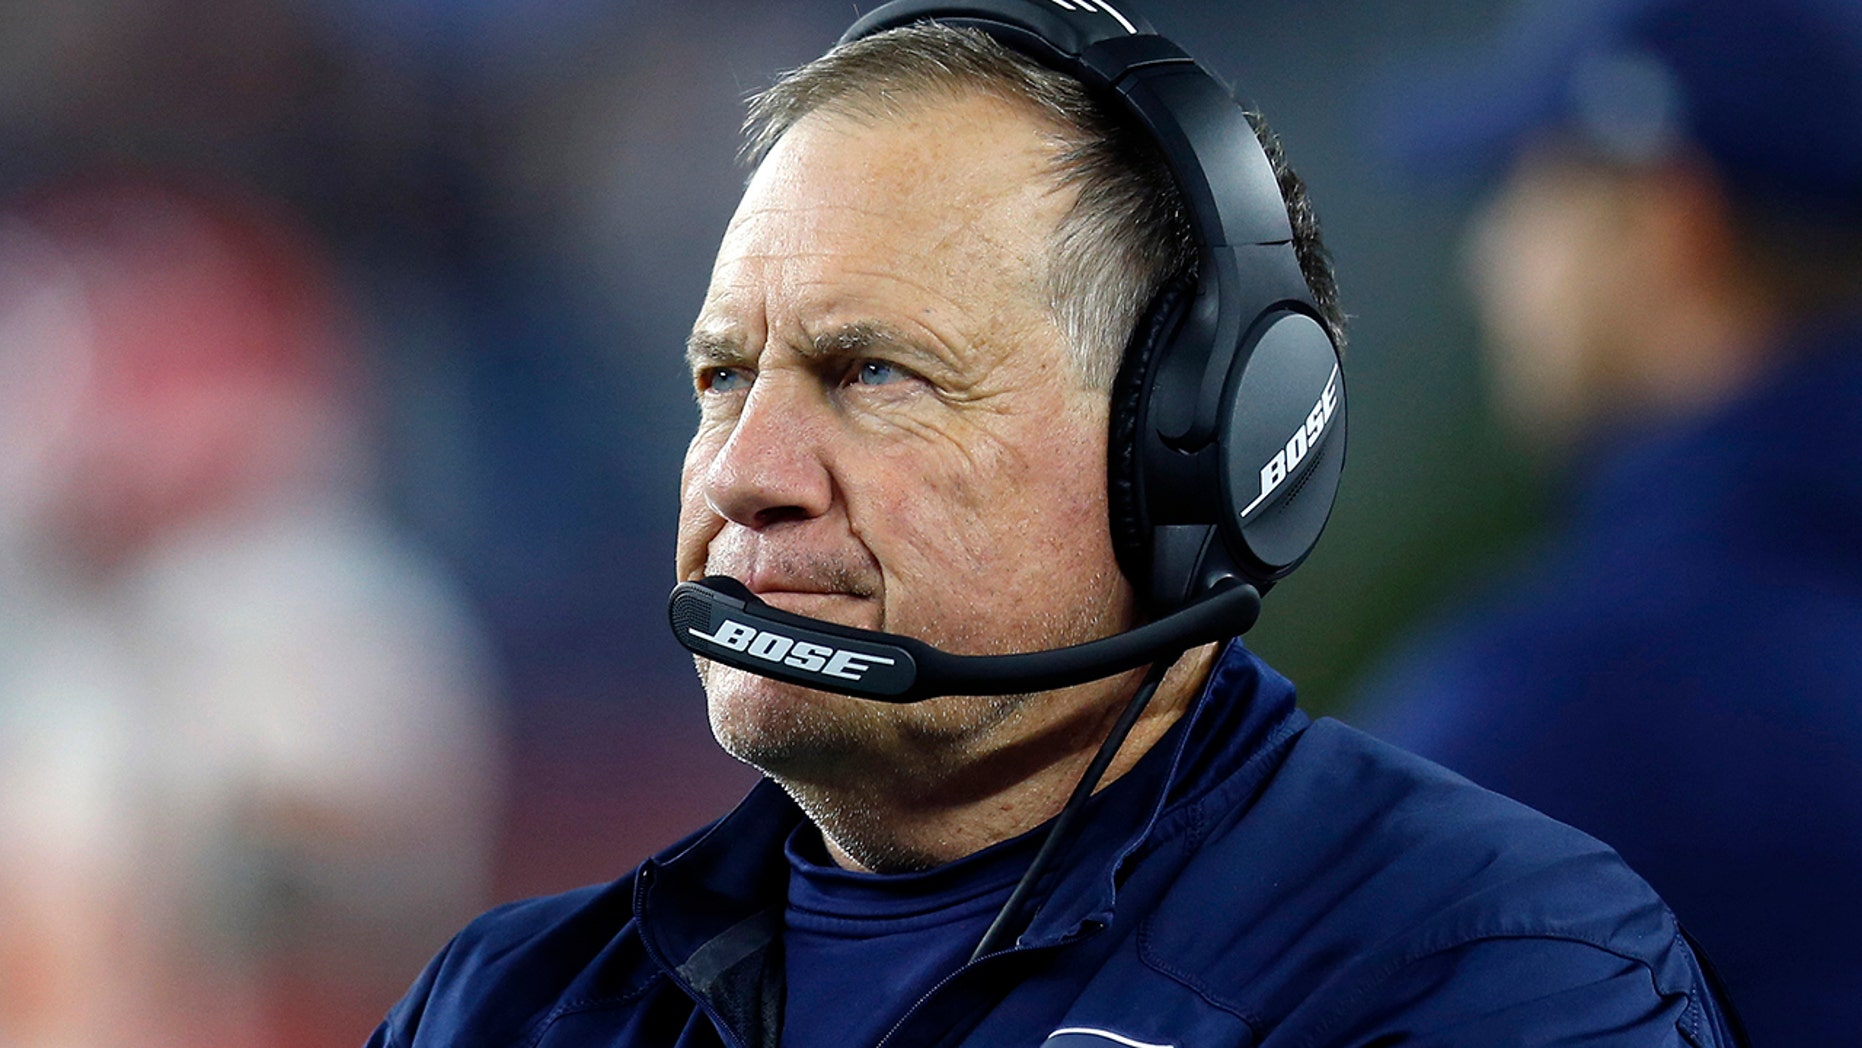 In this Sunday, Oct. 14, 2018 file photo, New England Patriots head coach Bill Belichick watches from the sideline during the second half of an NFL football game against the Kansas City Chiefs in Foxborough, Mass.